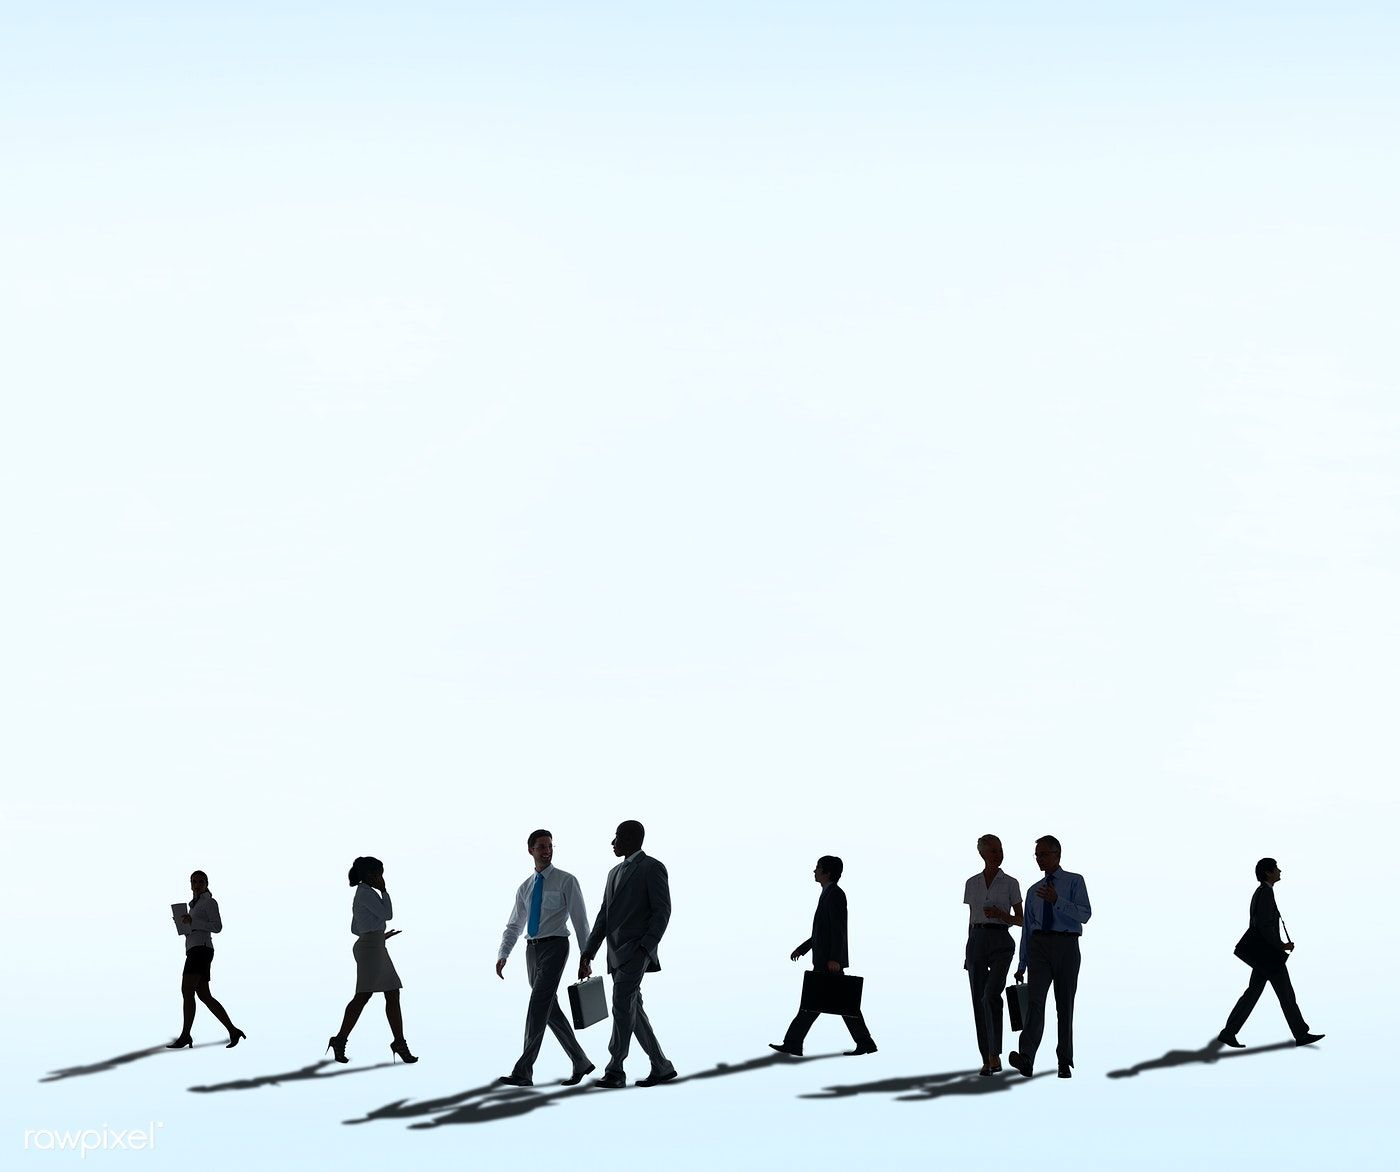 Download Premium Psd Of Business People Walking Silhouette On White